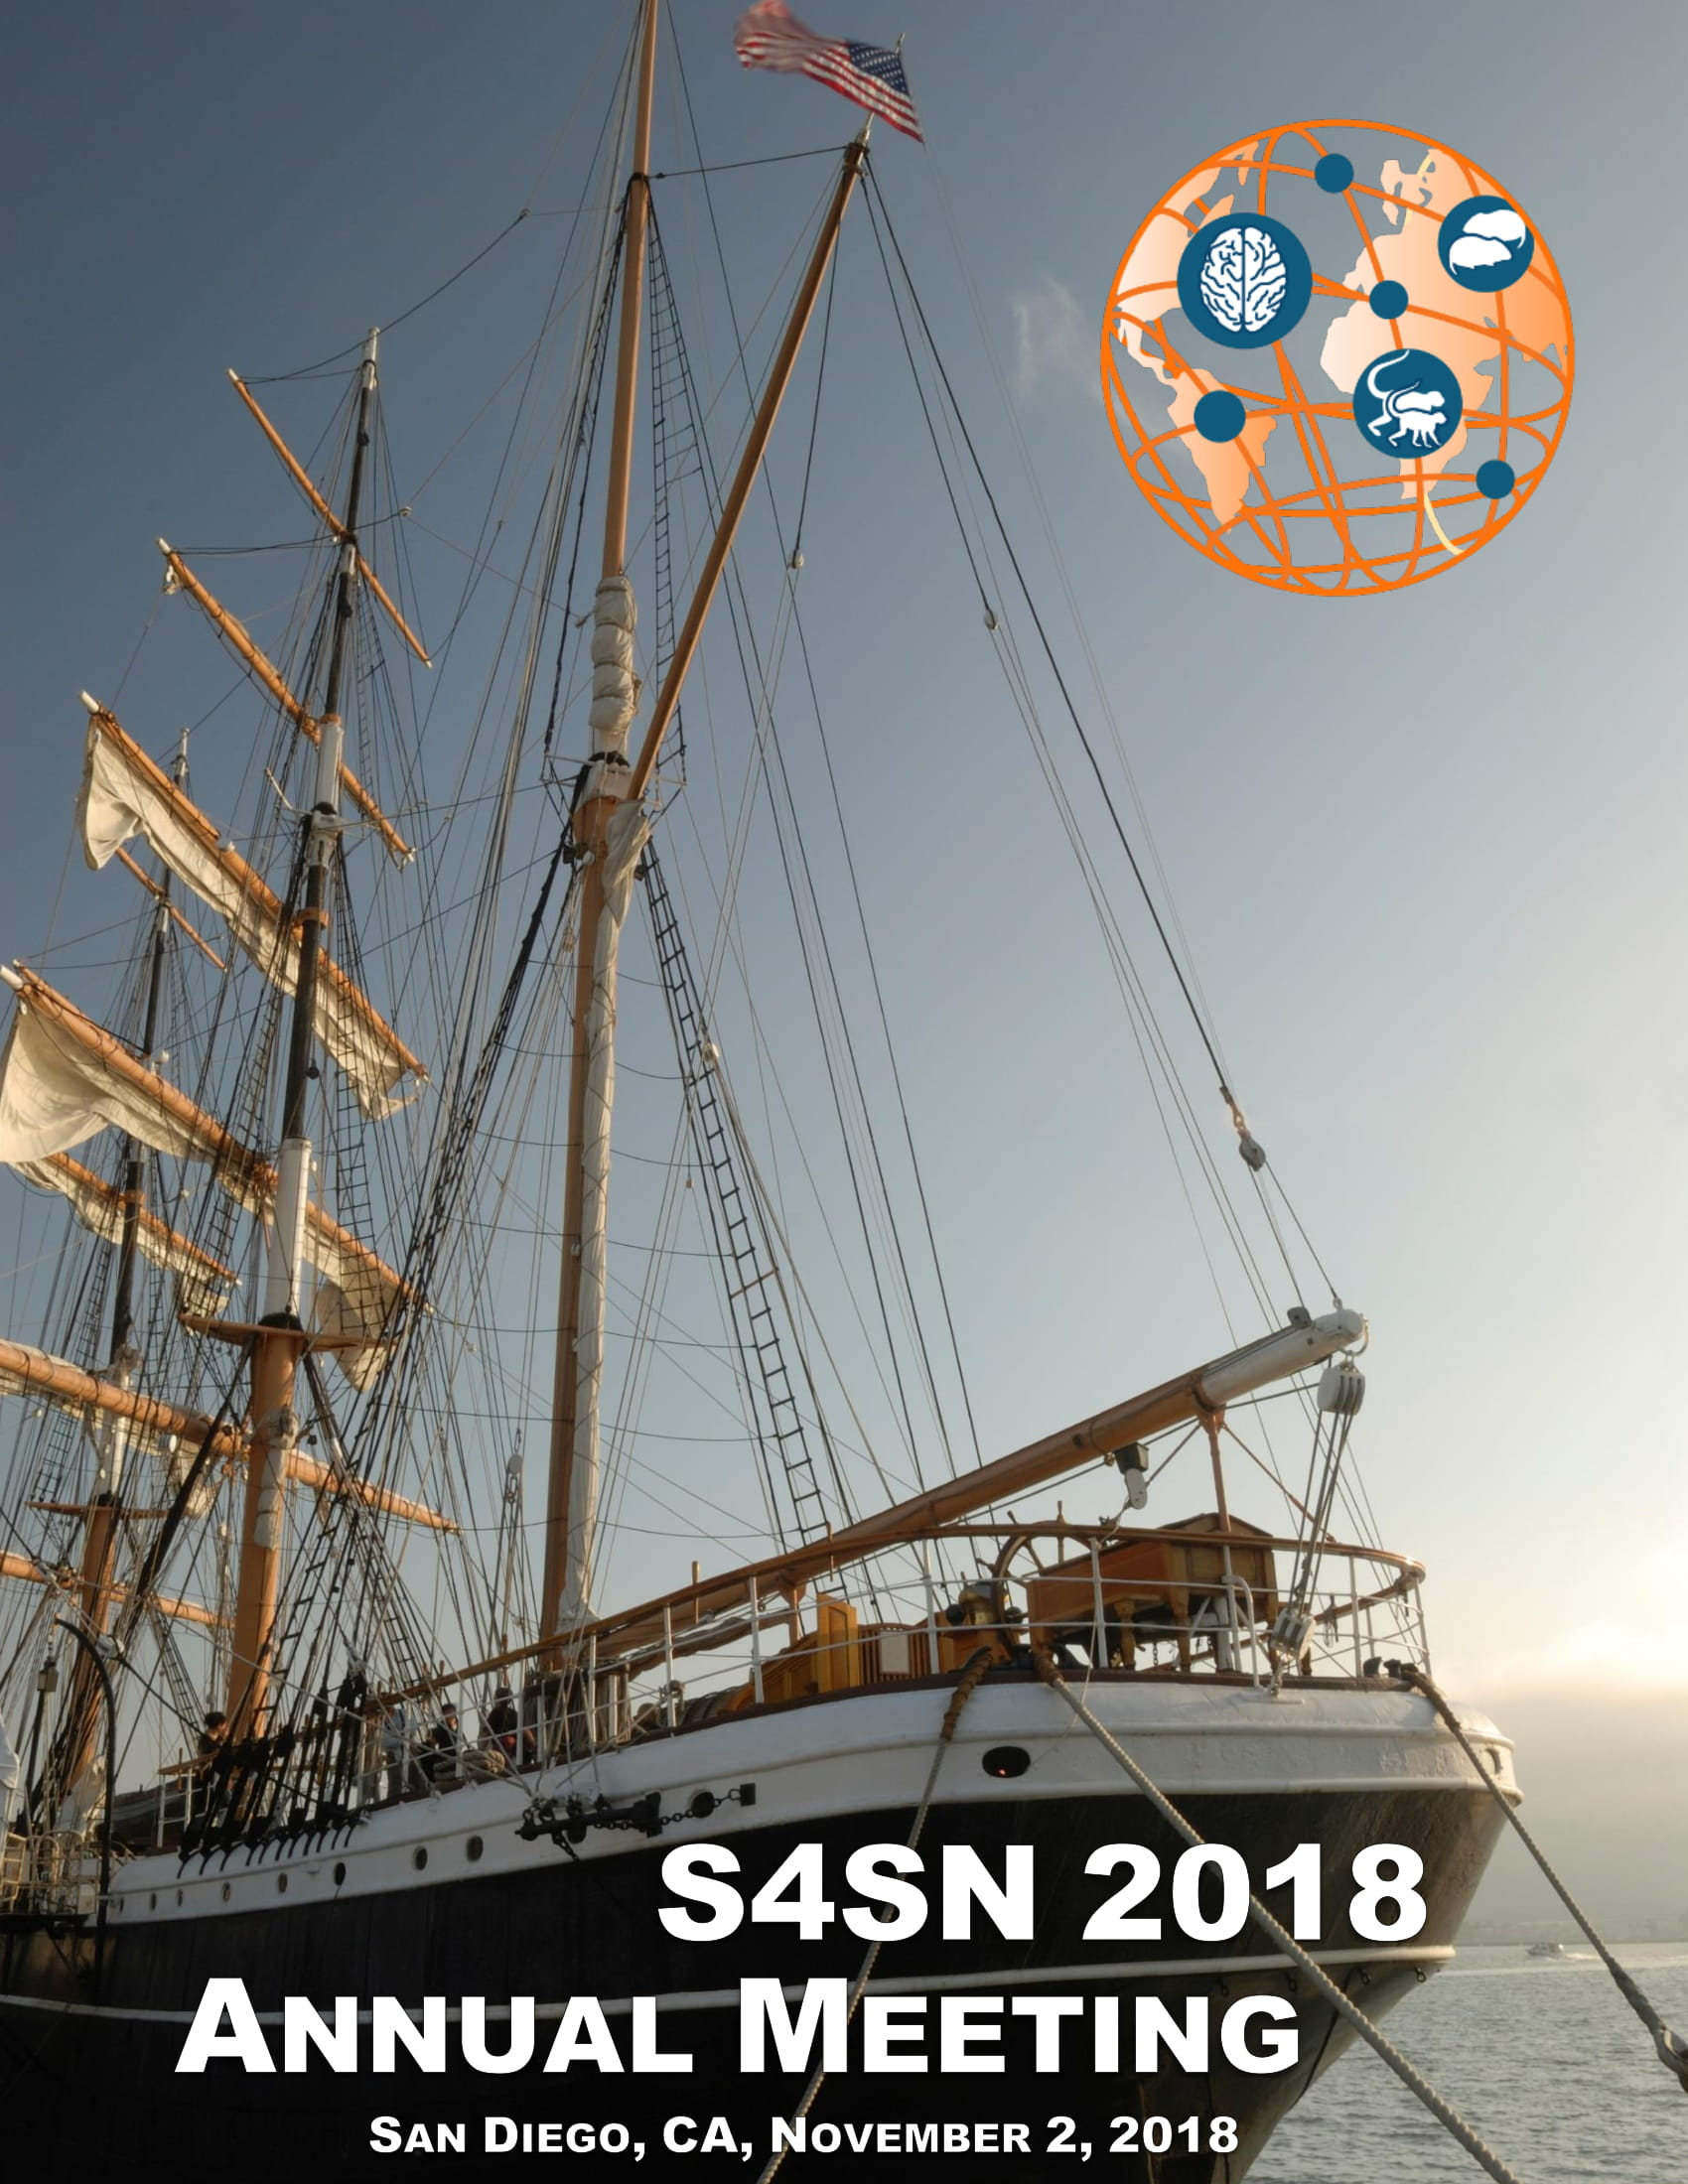 """S4SN 2018 Annual Meeting - The S4SN 2018 Annual Meeting was held in San Diego, CA, November 2, 2018. The meeting consisted of a Keynote address by Larry J. Young, """"The Neurobiology of Social Bonding, Social Loss and Empathy: Implications for Autism"""", Emerging Topics sessions on """"A systems approach to understanding empathy"""" and """"Navigating social relationships using hippocampal networks"""" and two poster session. (See: S4SN 2018 Annual Meeting Printed Program)"""